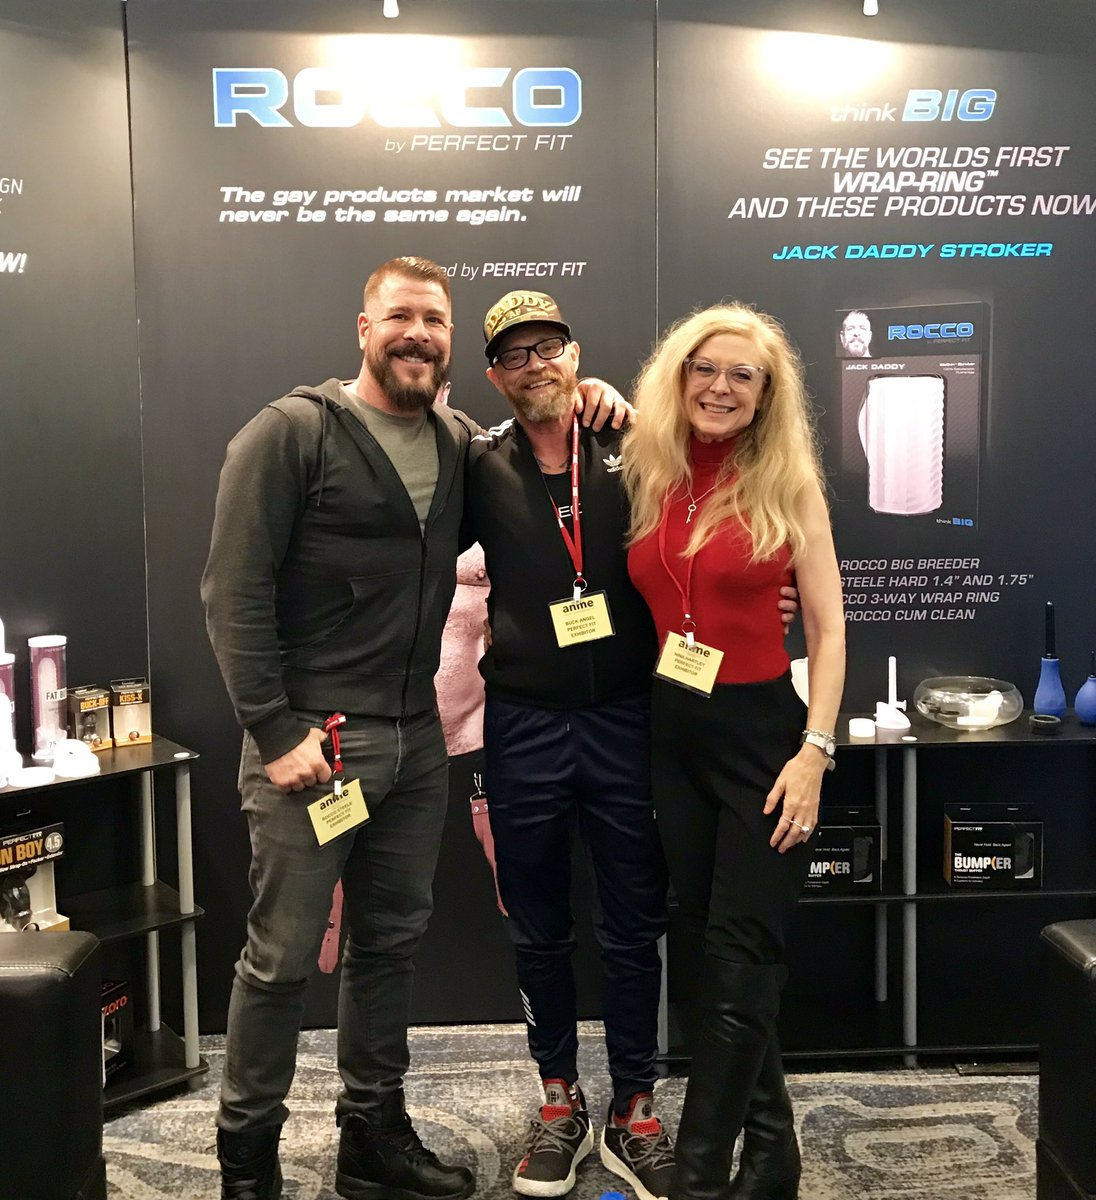 Rocco Steele Buck Angel Nina Hartley at ANME Perfect Fit Brand booth